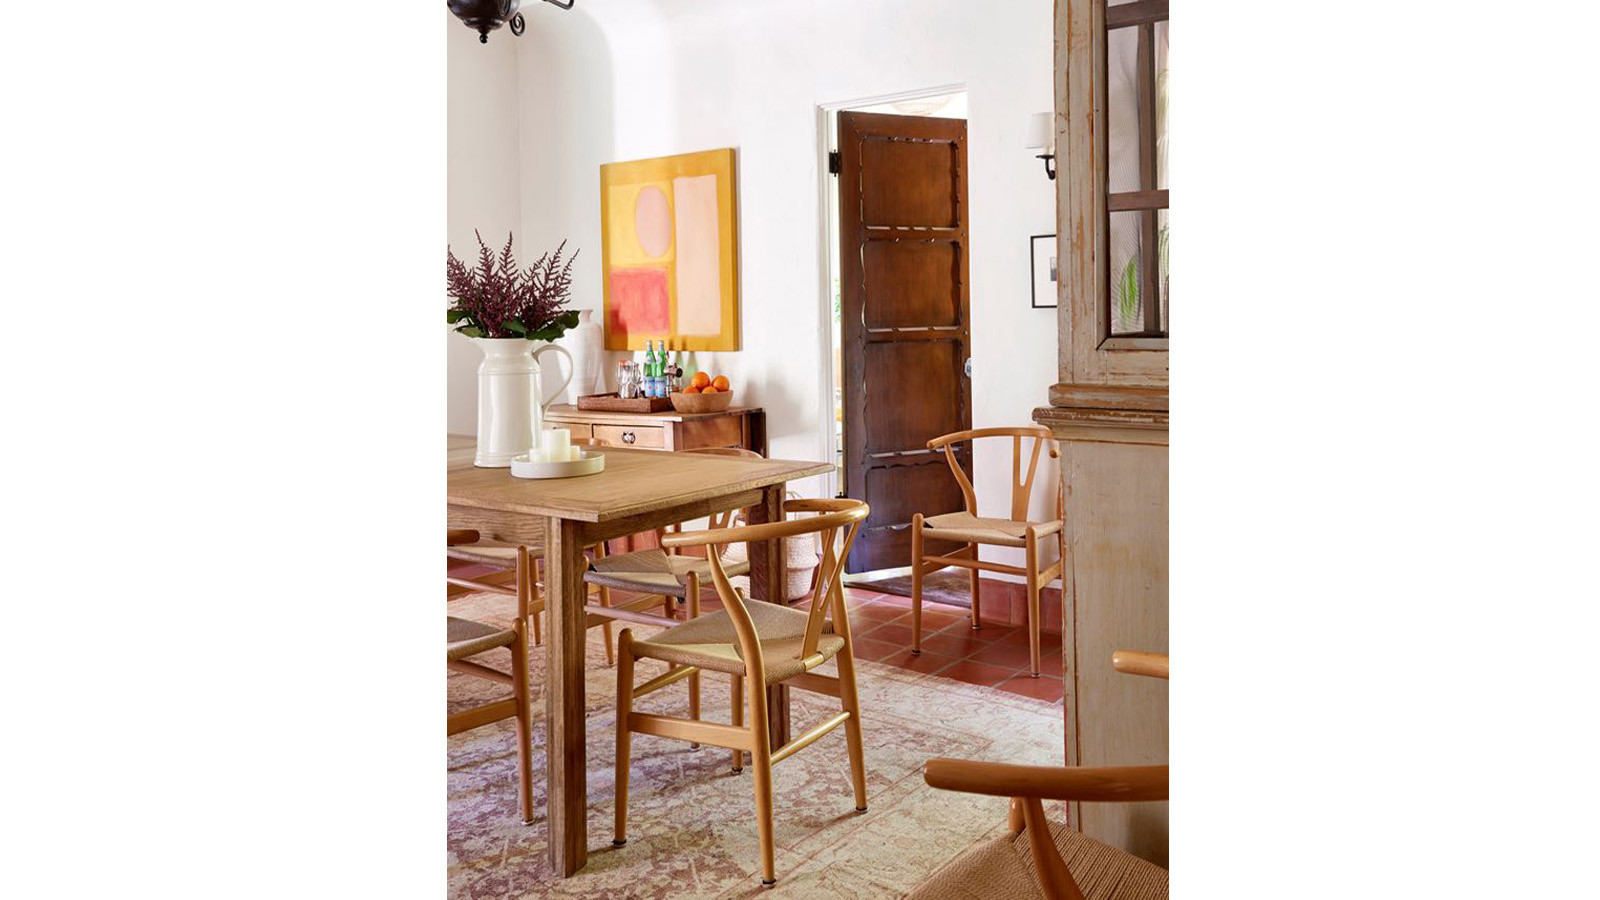 The dining room features Hans Wegner wishbone chairs.